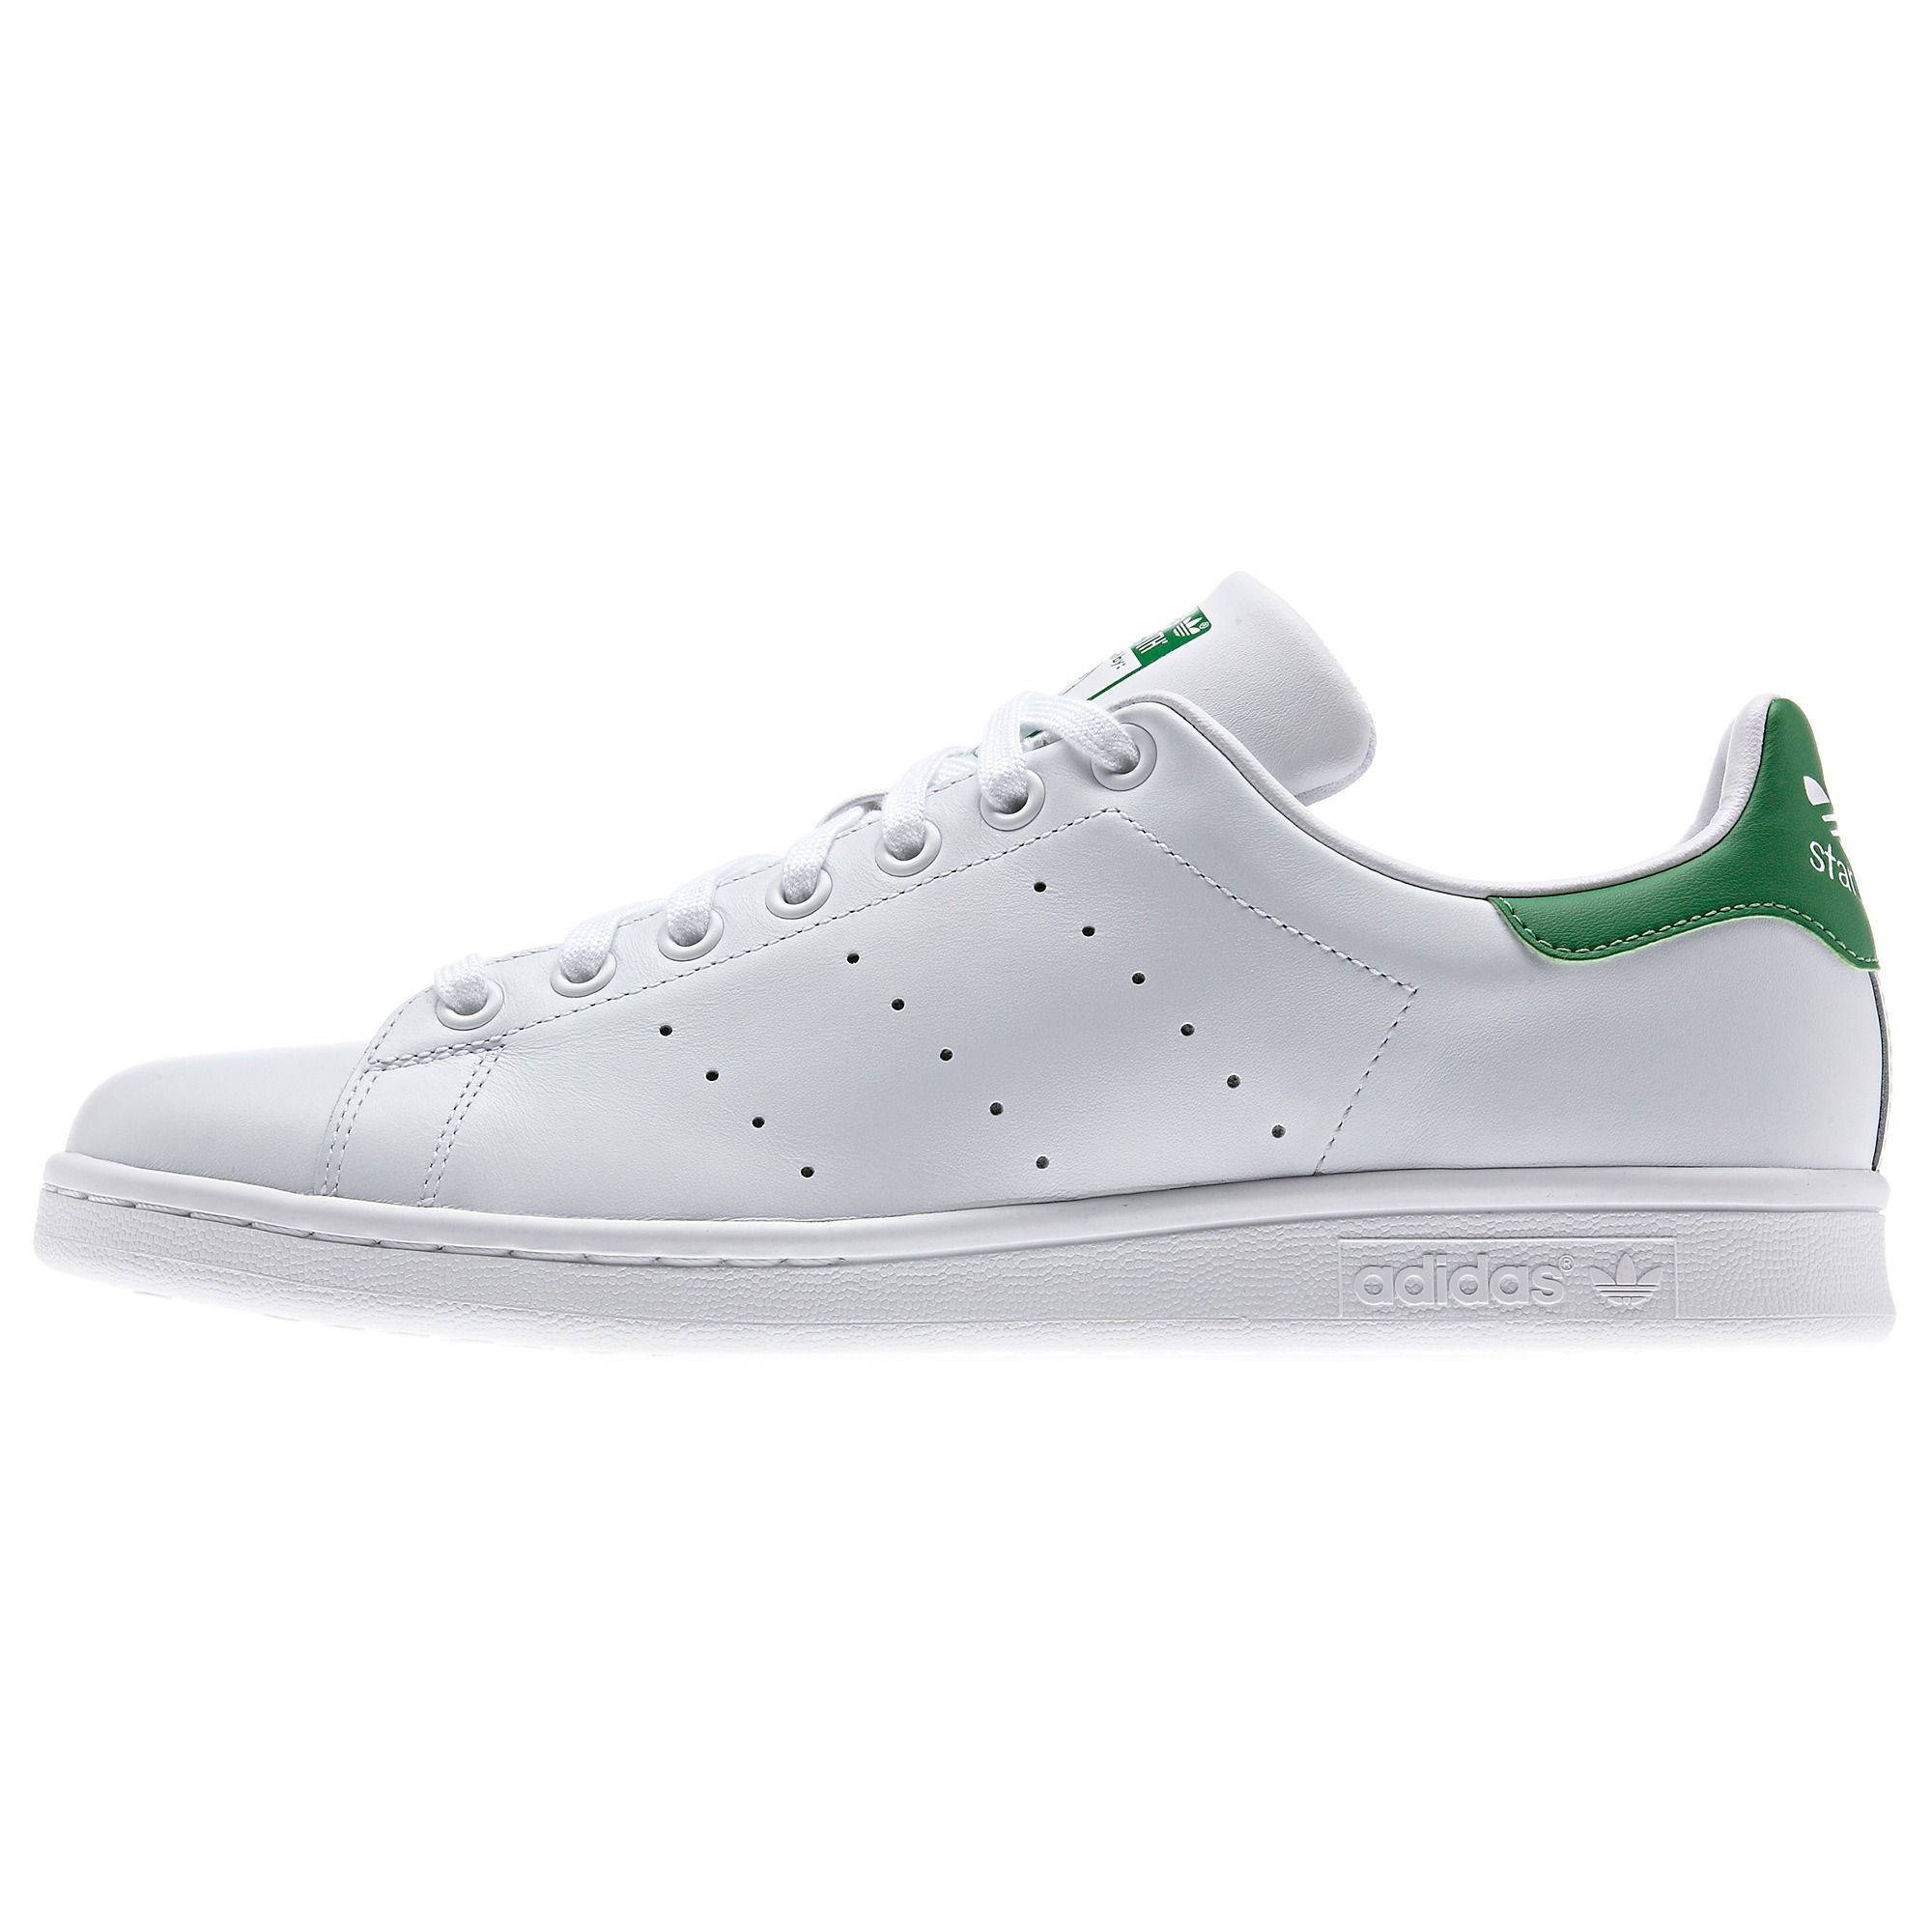 Clean and crisp Stan Smiths for spring. Feels right 5b5fc65c5